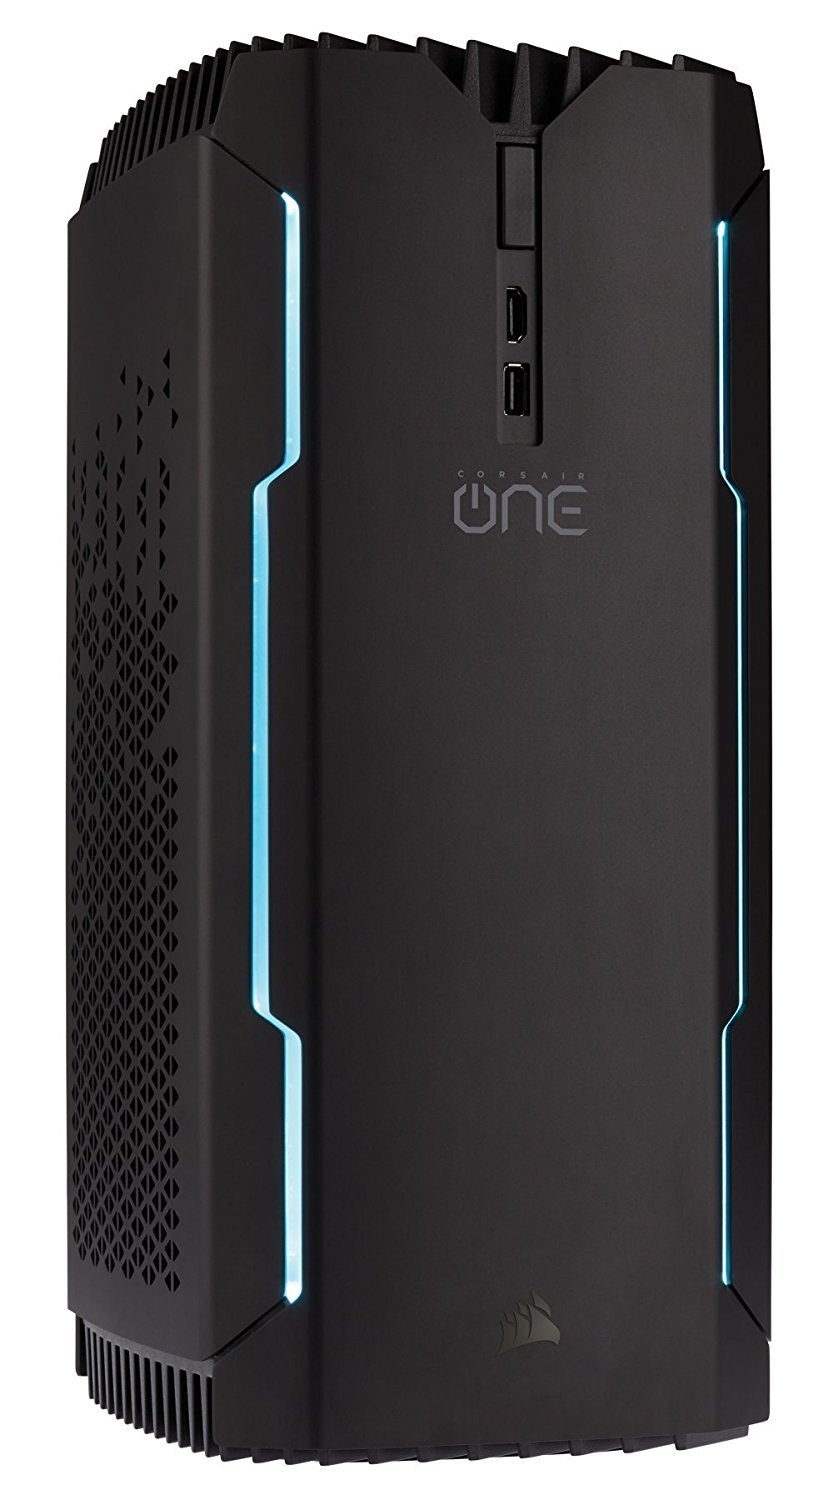 Corsair One Pro - Compact Gaming PC image